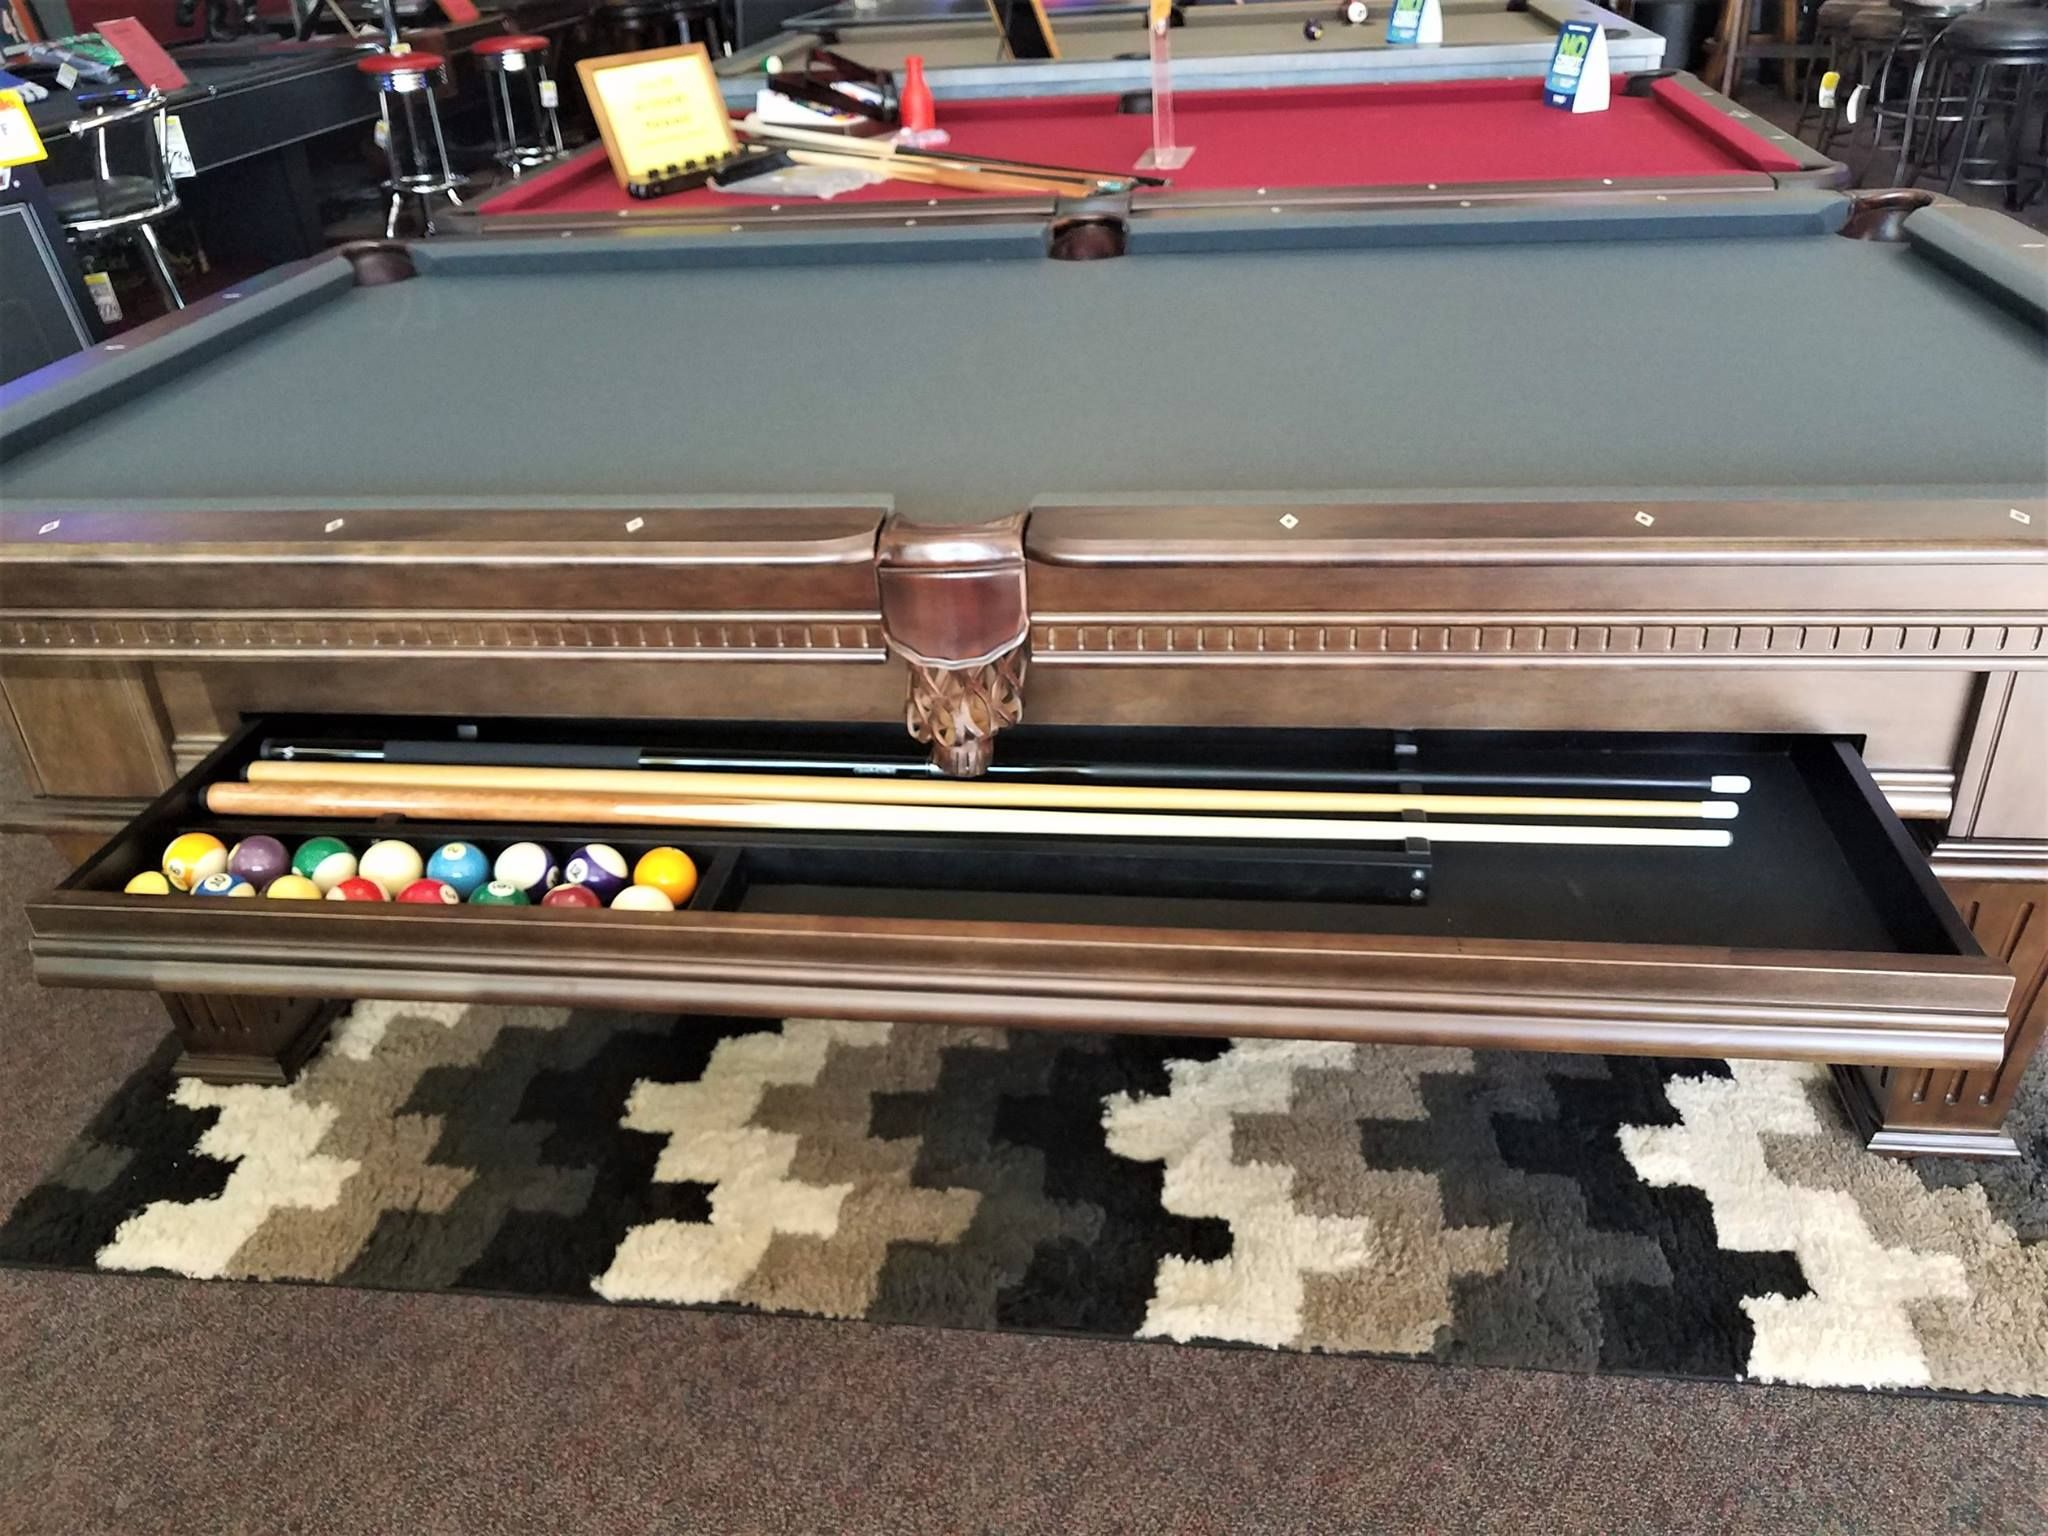 Beau Au0026C Billiards U0026 Barstools Store In Orange County, CA Offers The Best  Selection U0026 Wide Range Of Pool Table, Gaming Tables, Barstools U0026 Bookcase  At Best Rate.